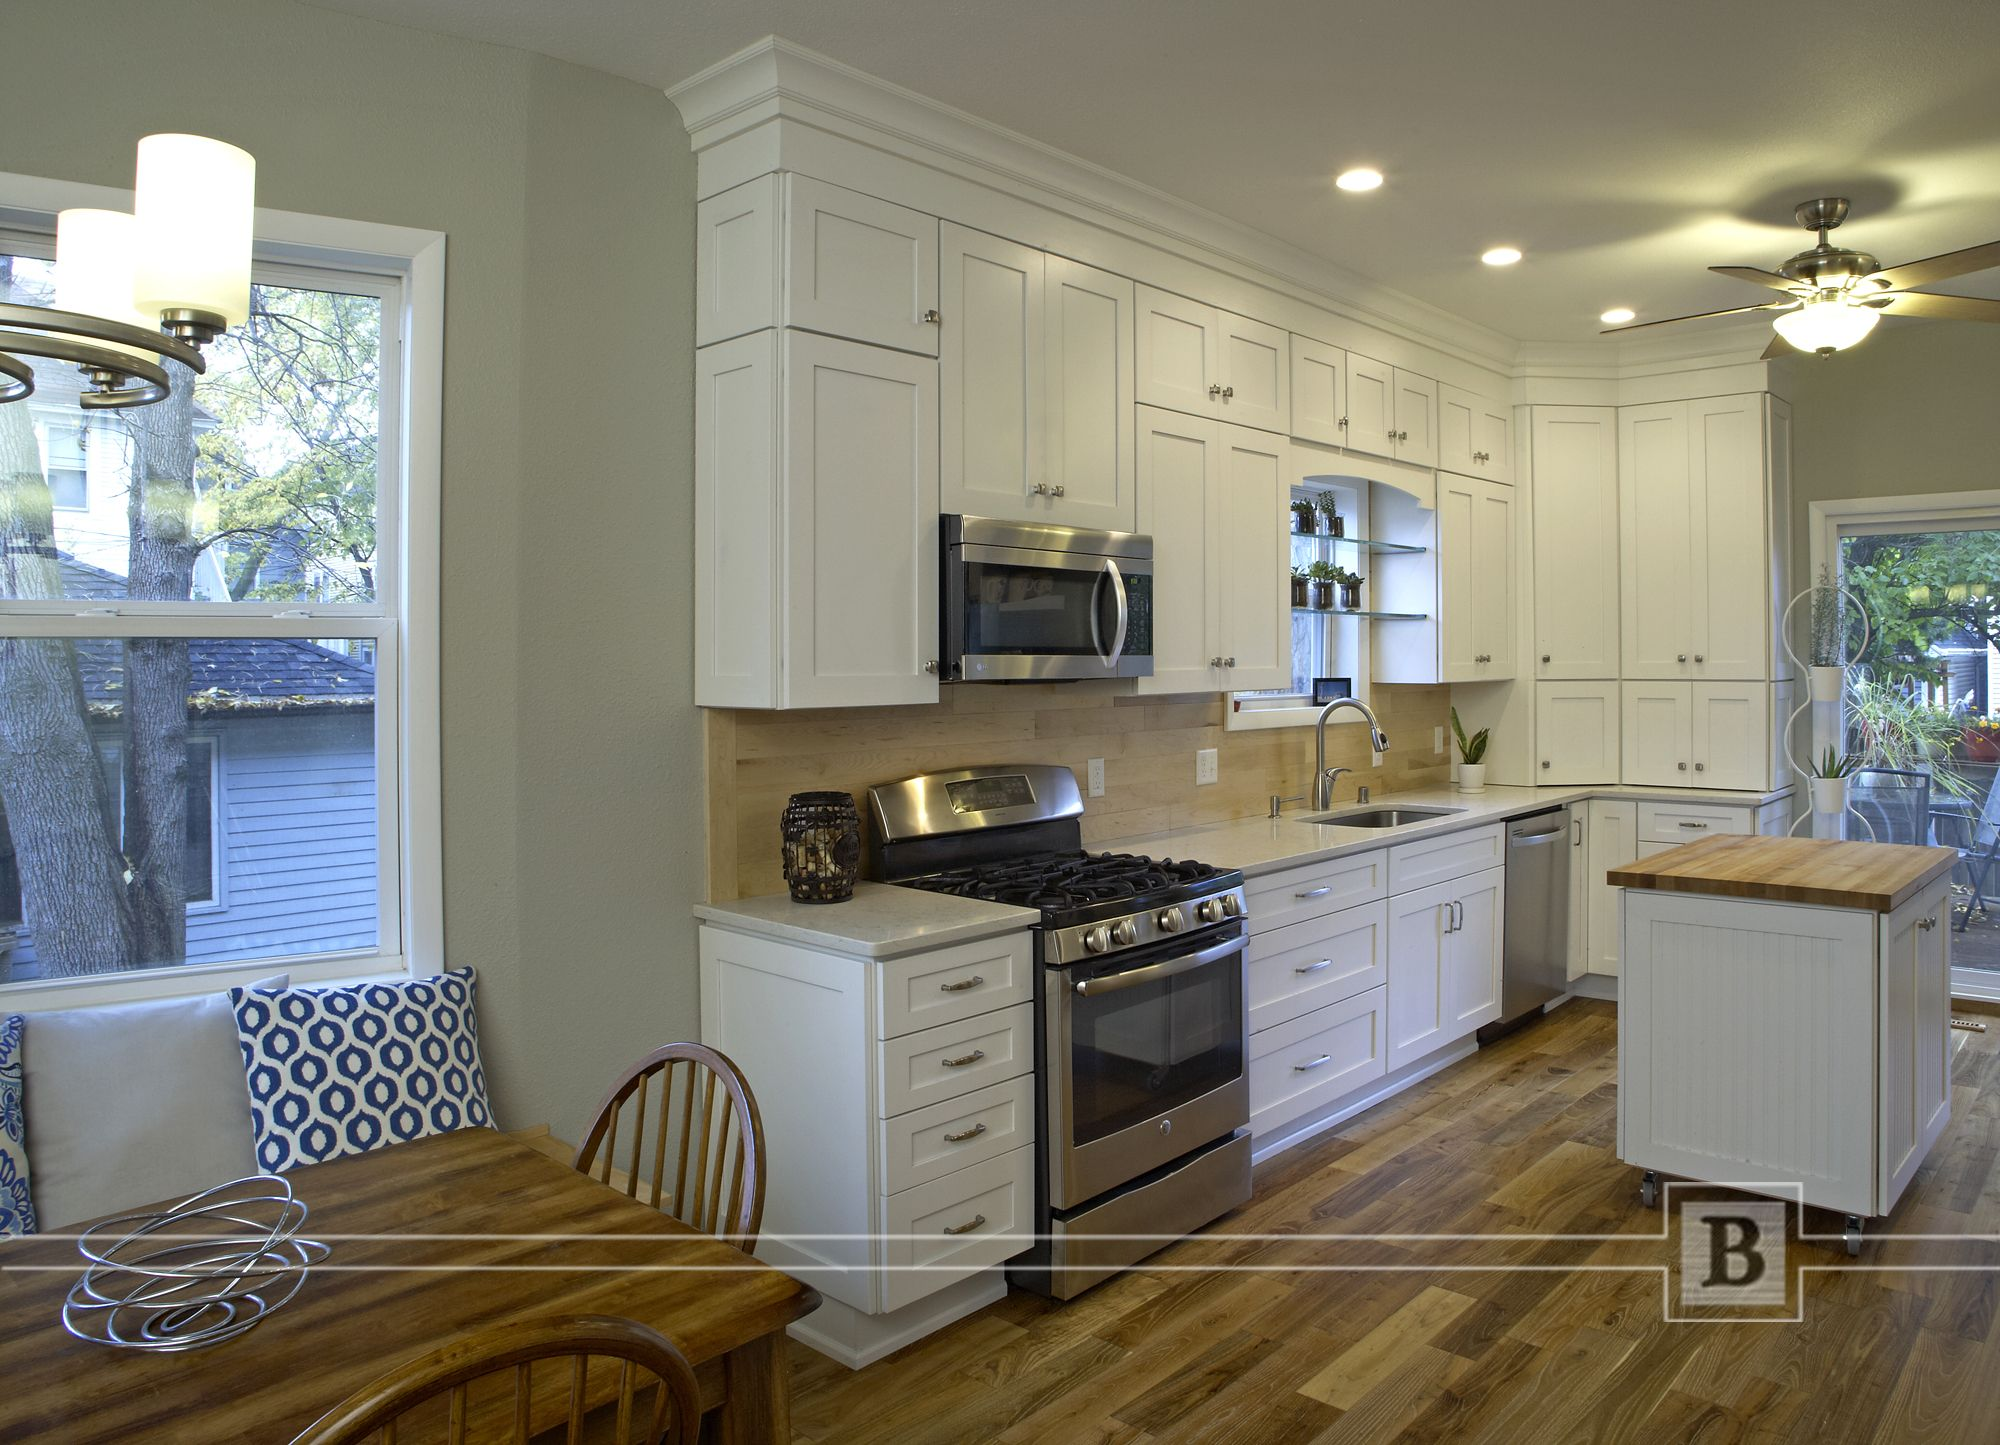 Painted White Cabinetry Stacked Wall Cabinets Wood Planked Backsplash And Quartz Tops Kitchen Design White Cabinetry Kitchen